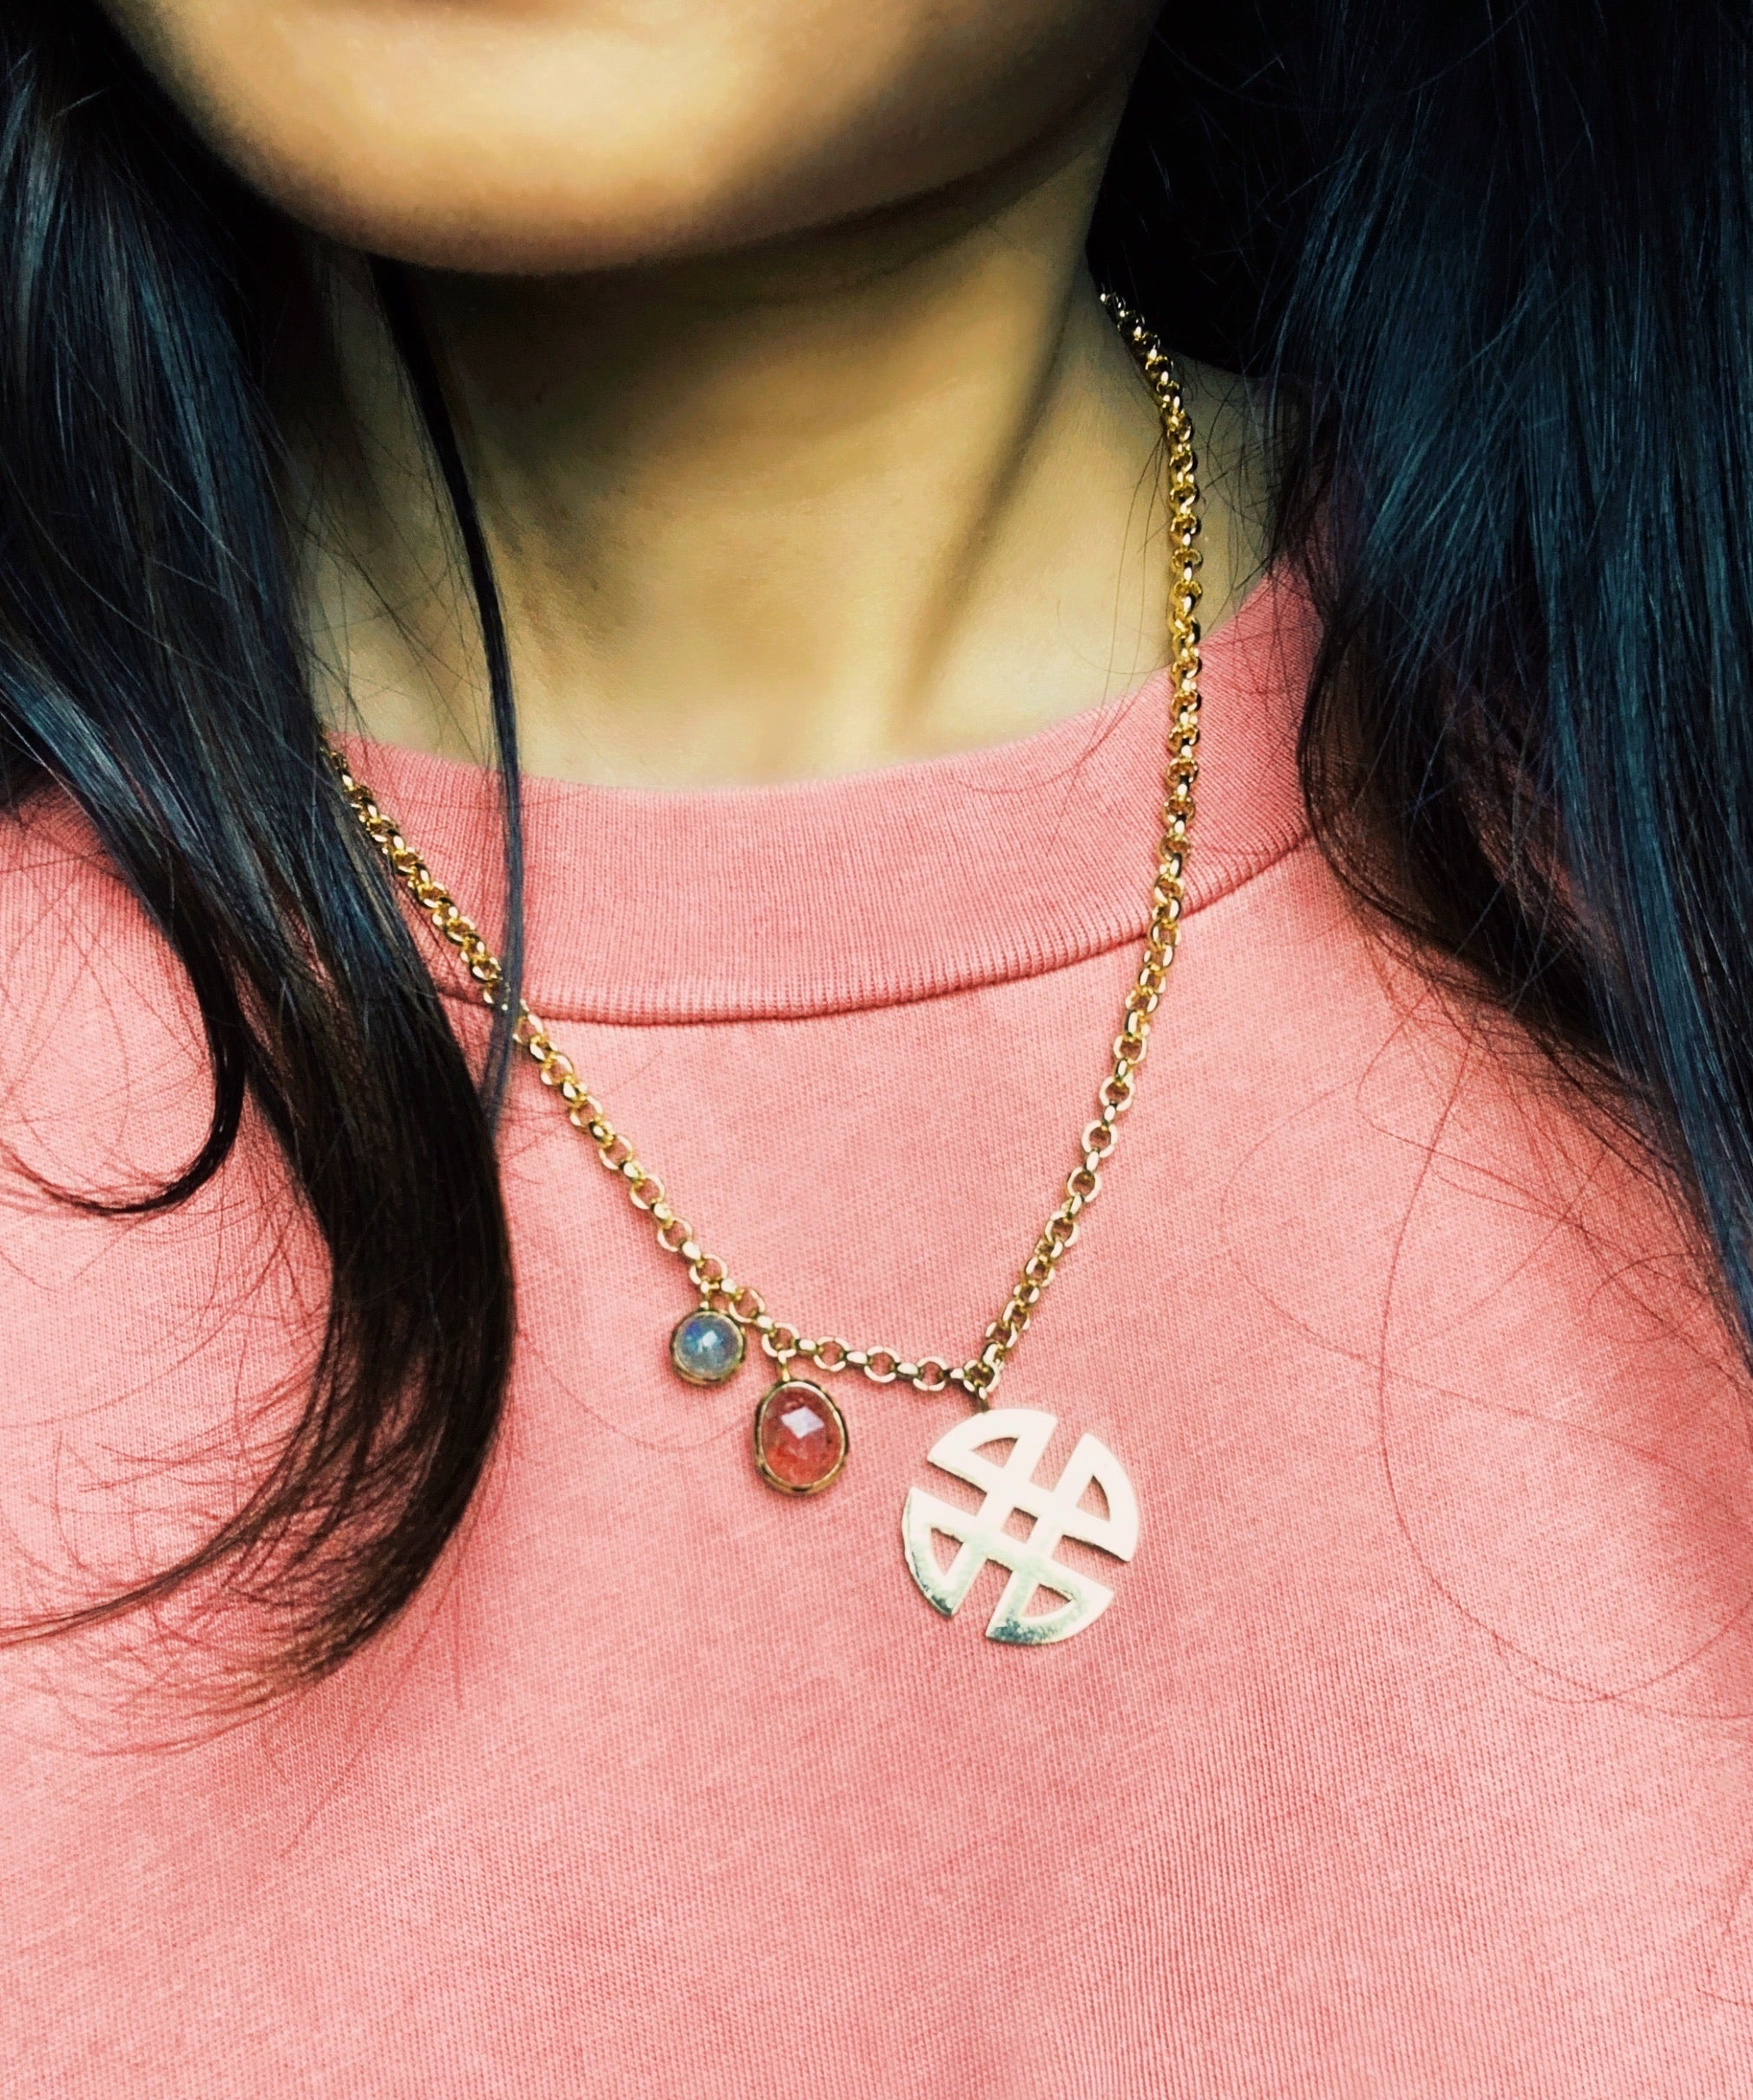 Shield Charm Neckpiece